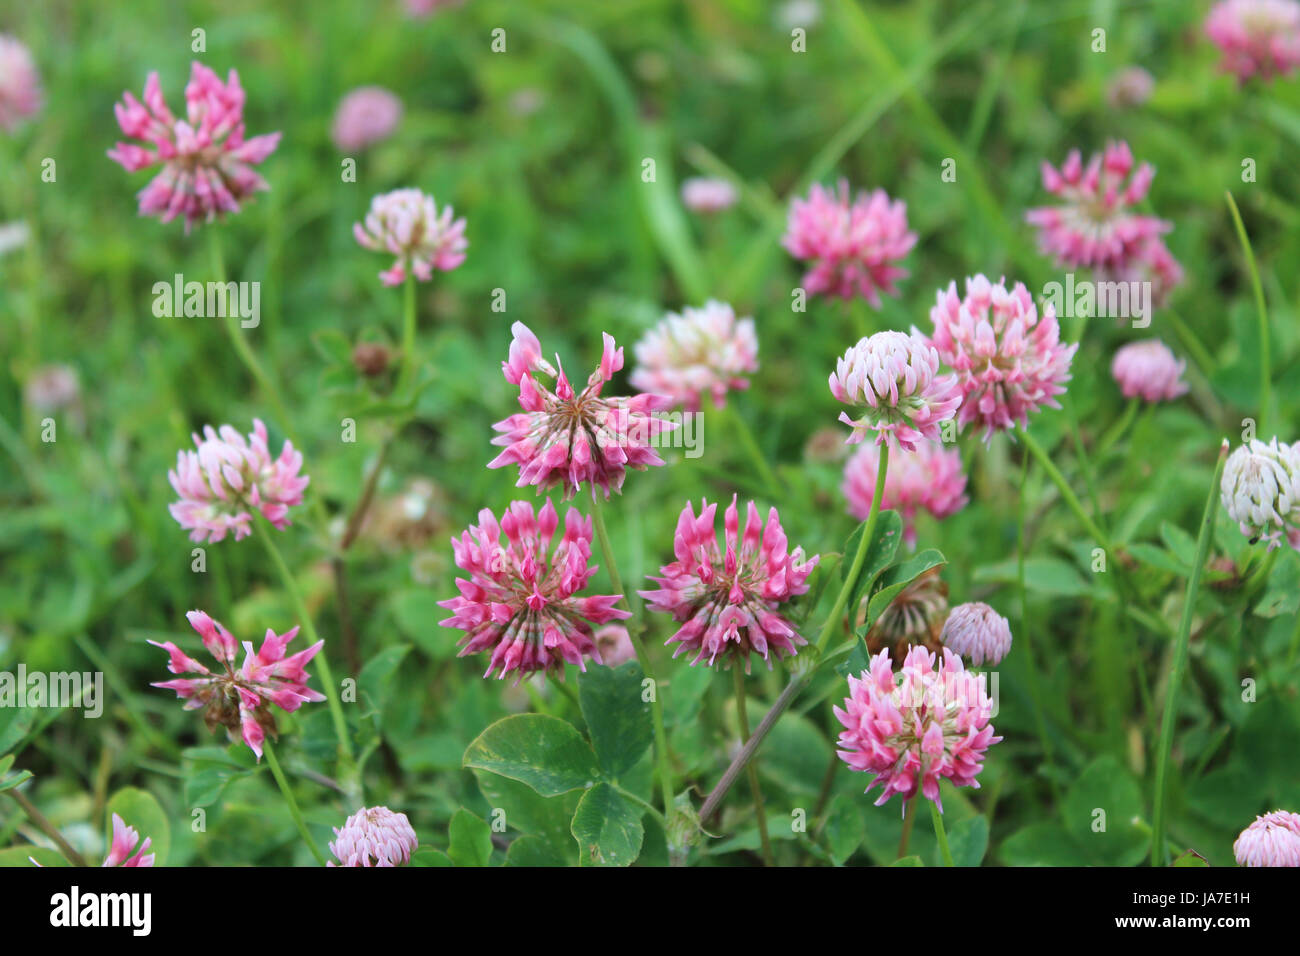 Leaf flower plant hairy clover meadow grass lawn green pink leaf flower plant hairy clover meadow grass lawn green pink natural mightylinksfo